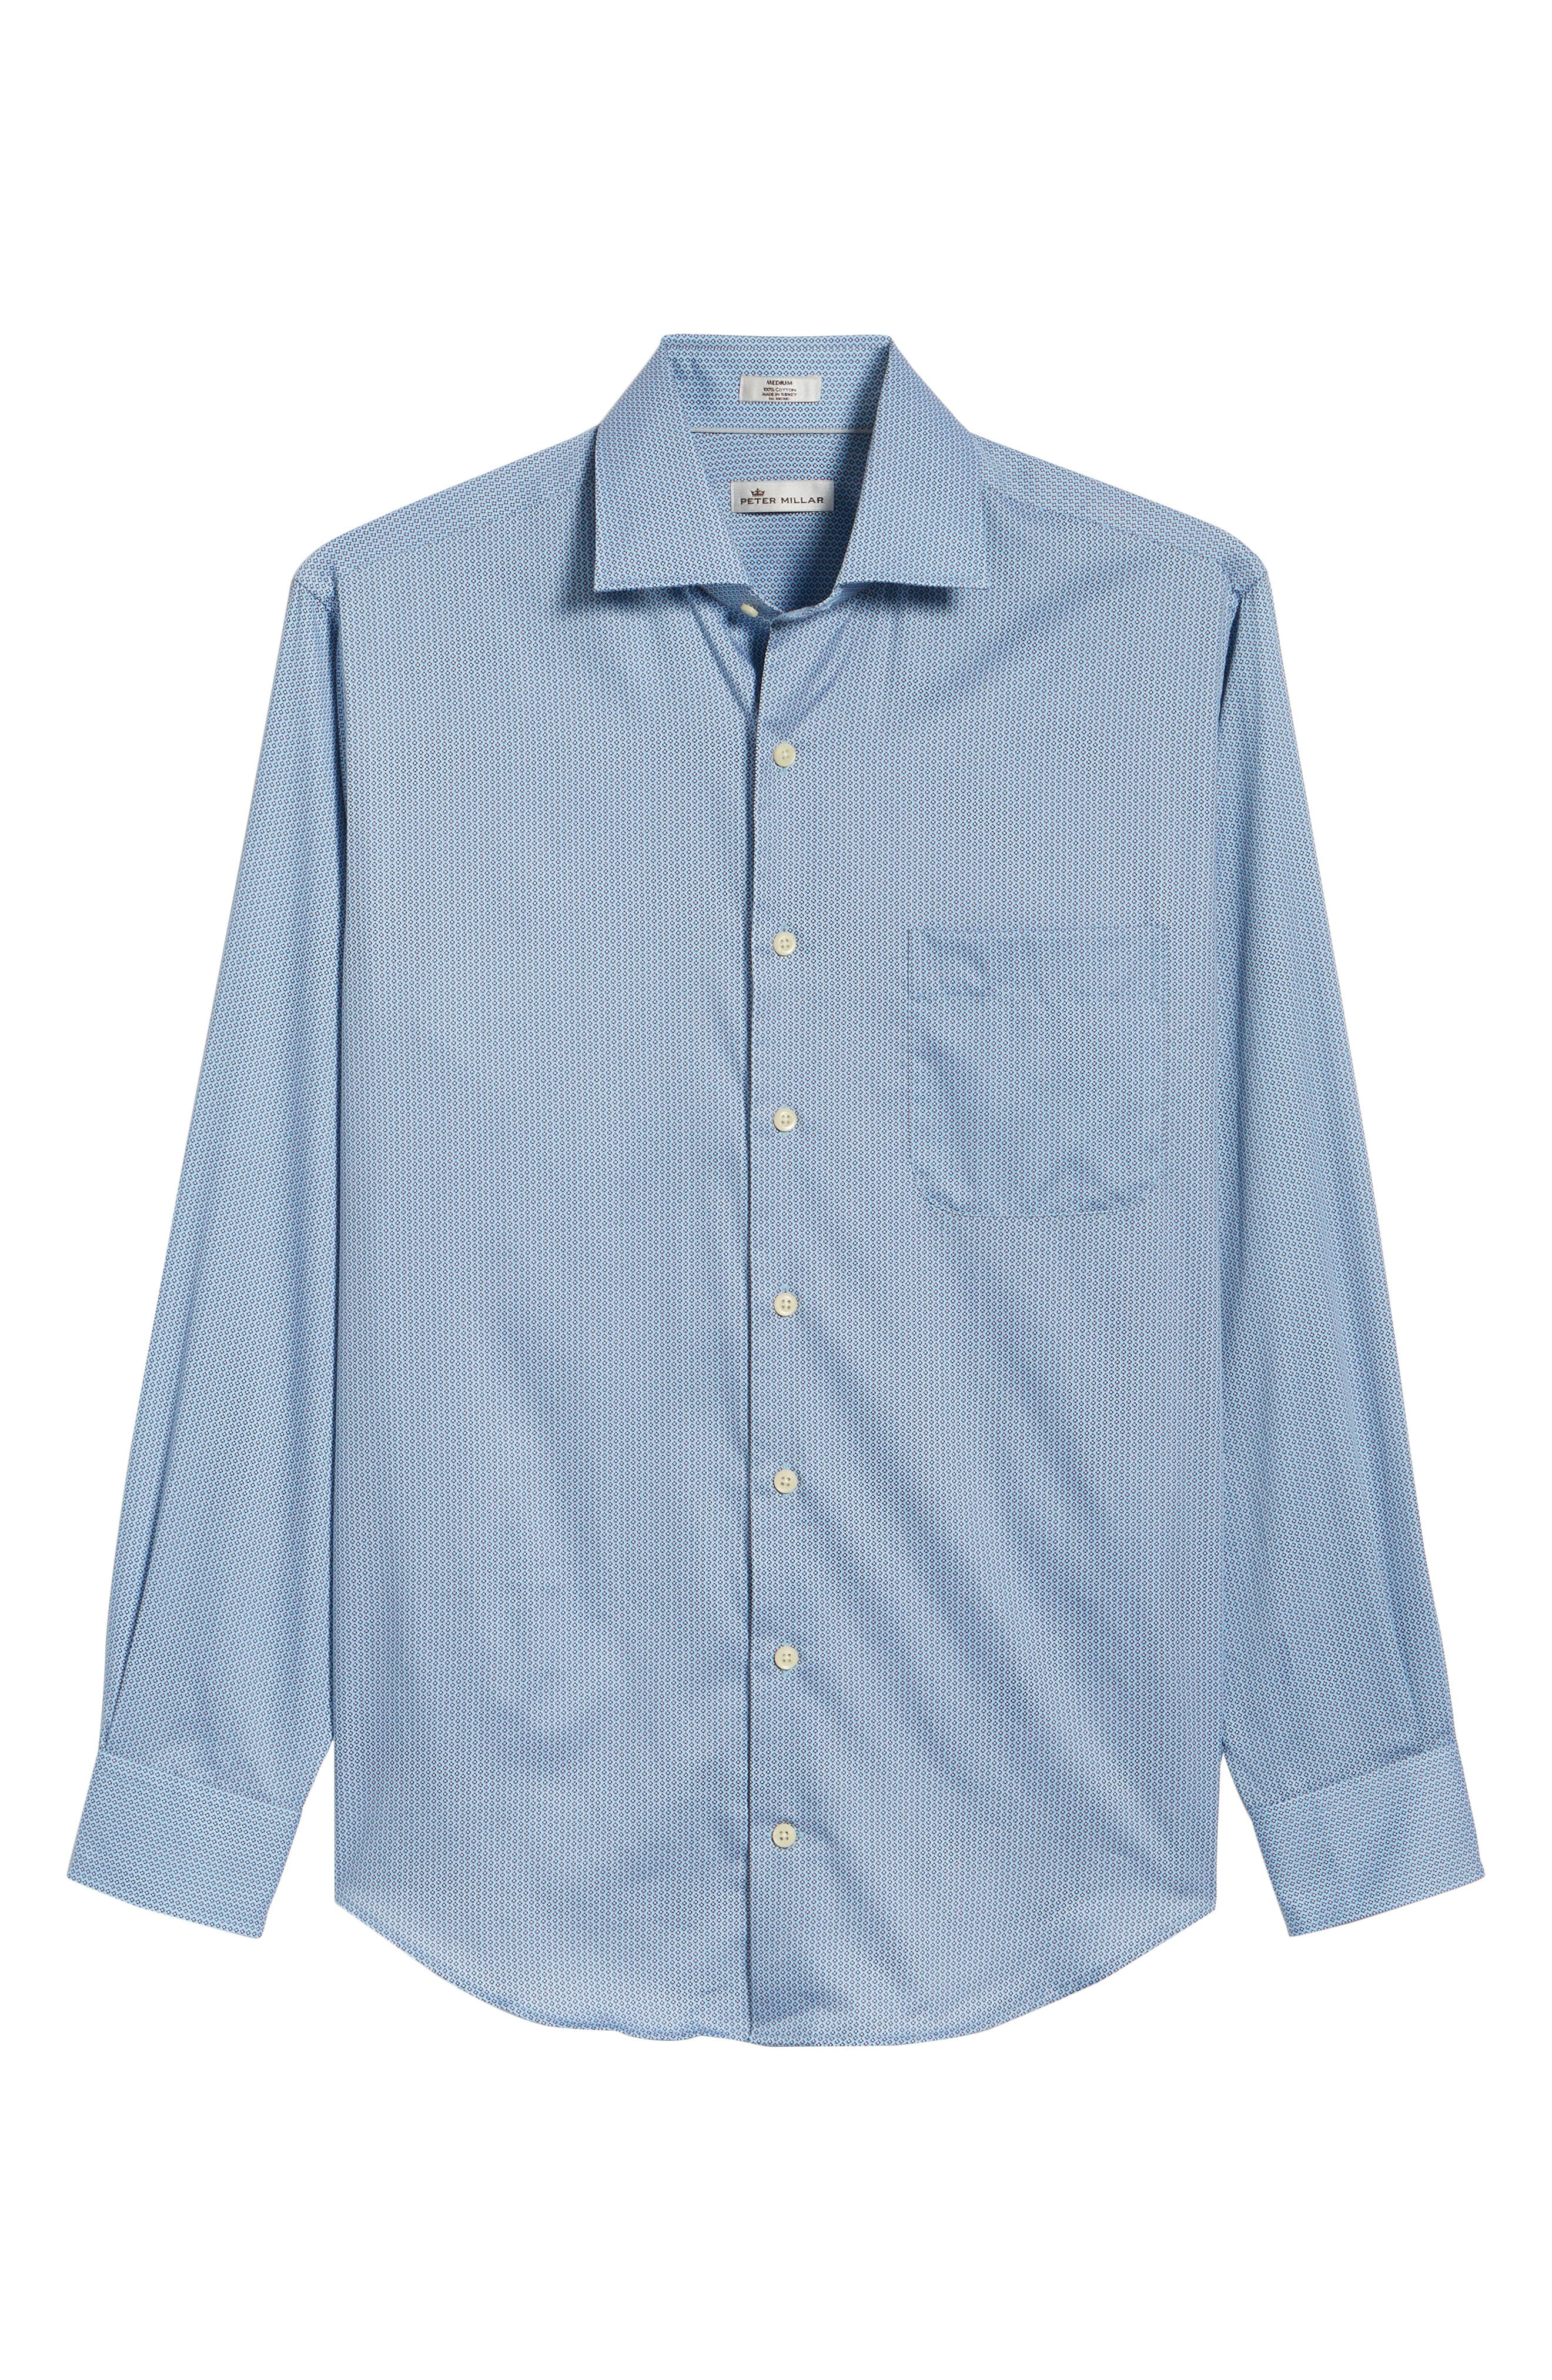 Geo Petal Sport Shirt,                             Alternate thumbnail 5, color,                             GROTTO BLUE